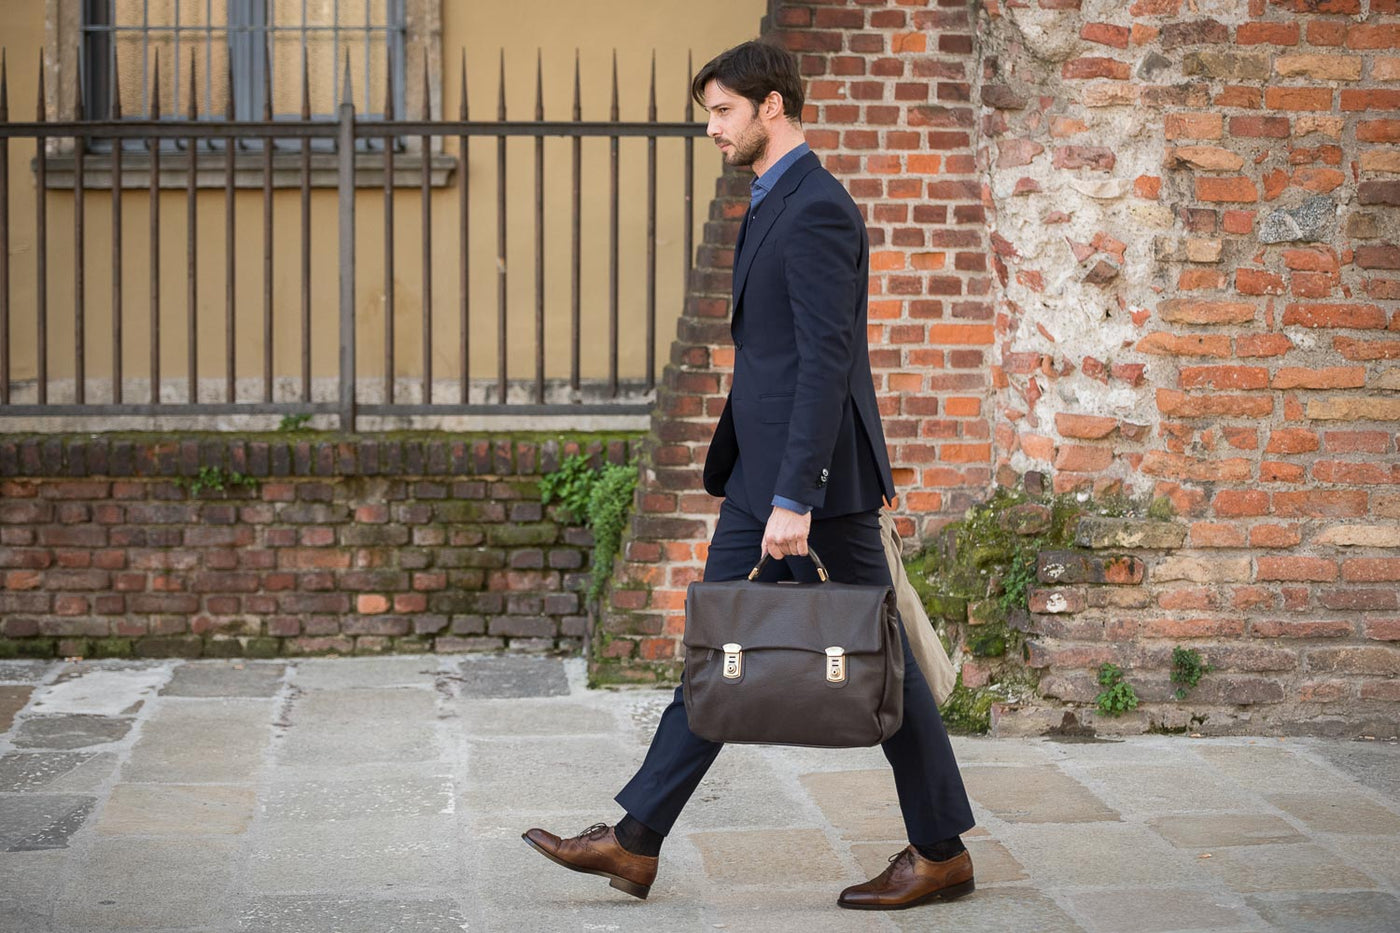 The classic summer outfit for men | The Velasca Office Collection